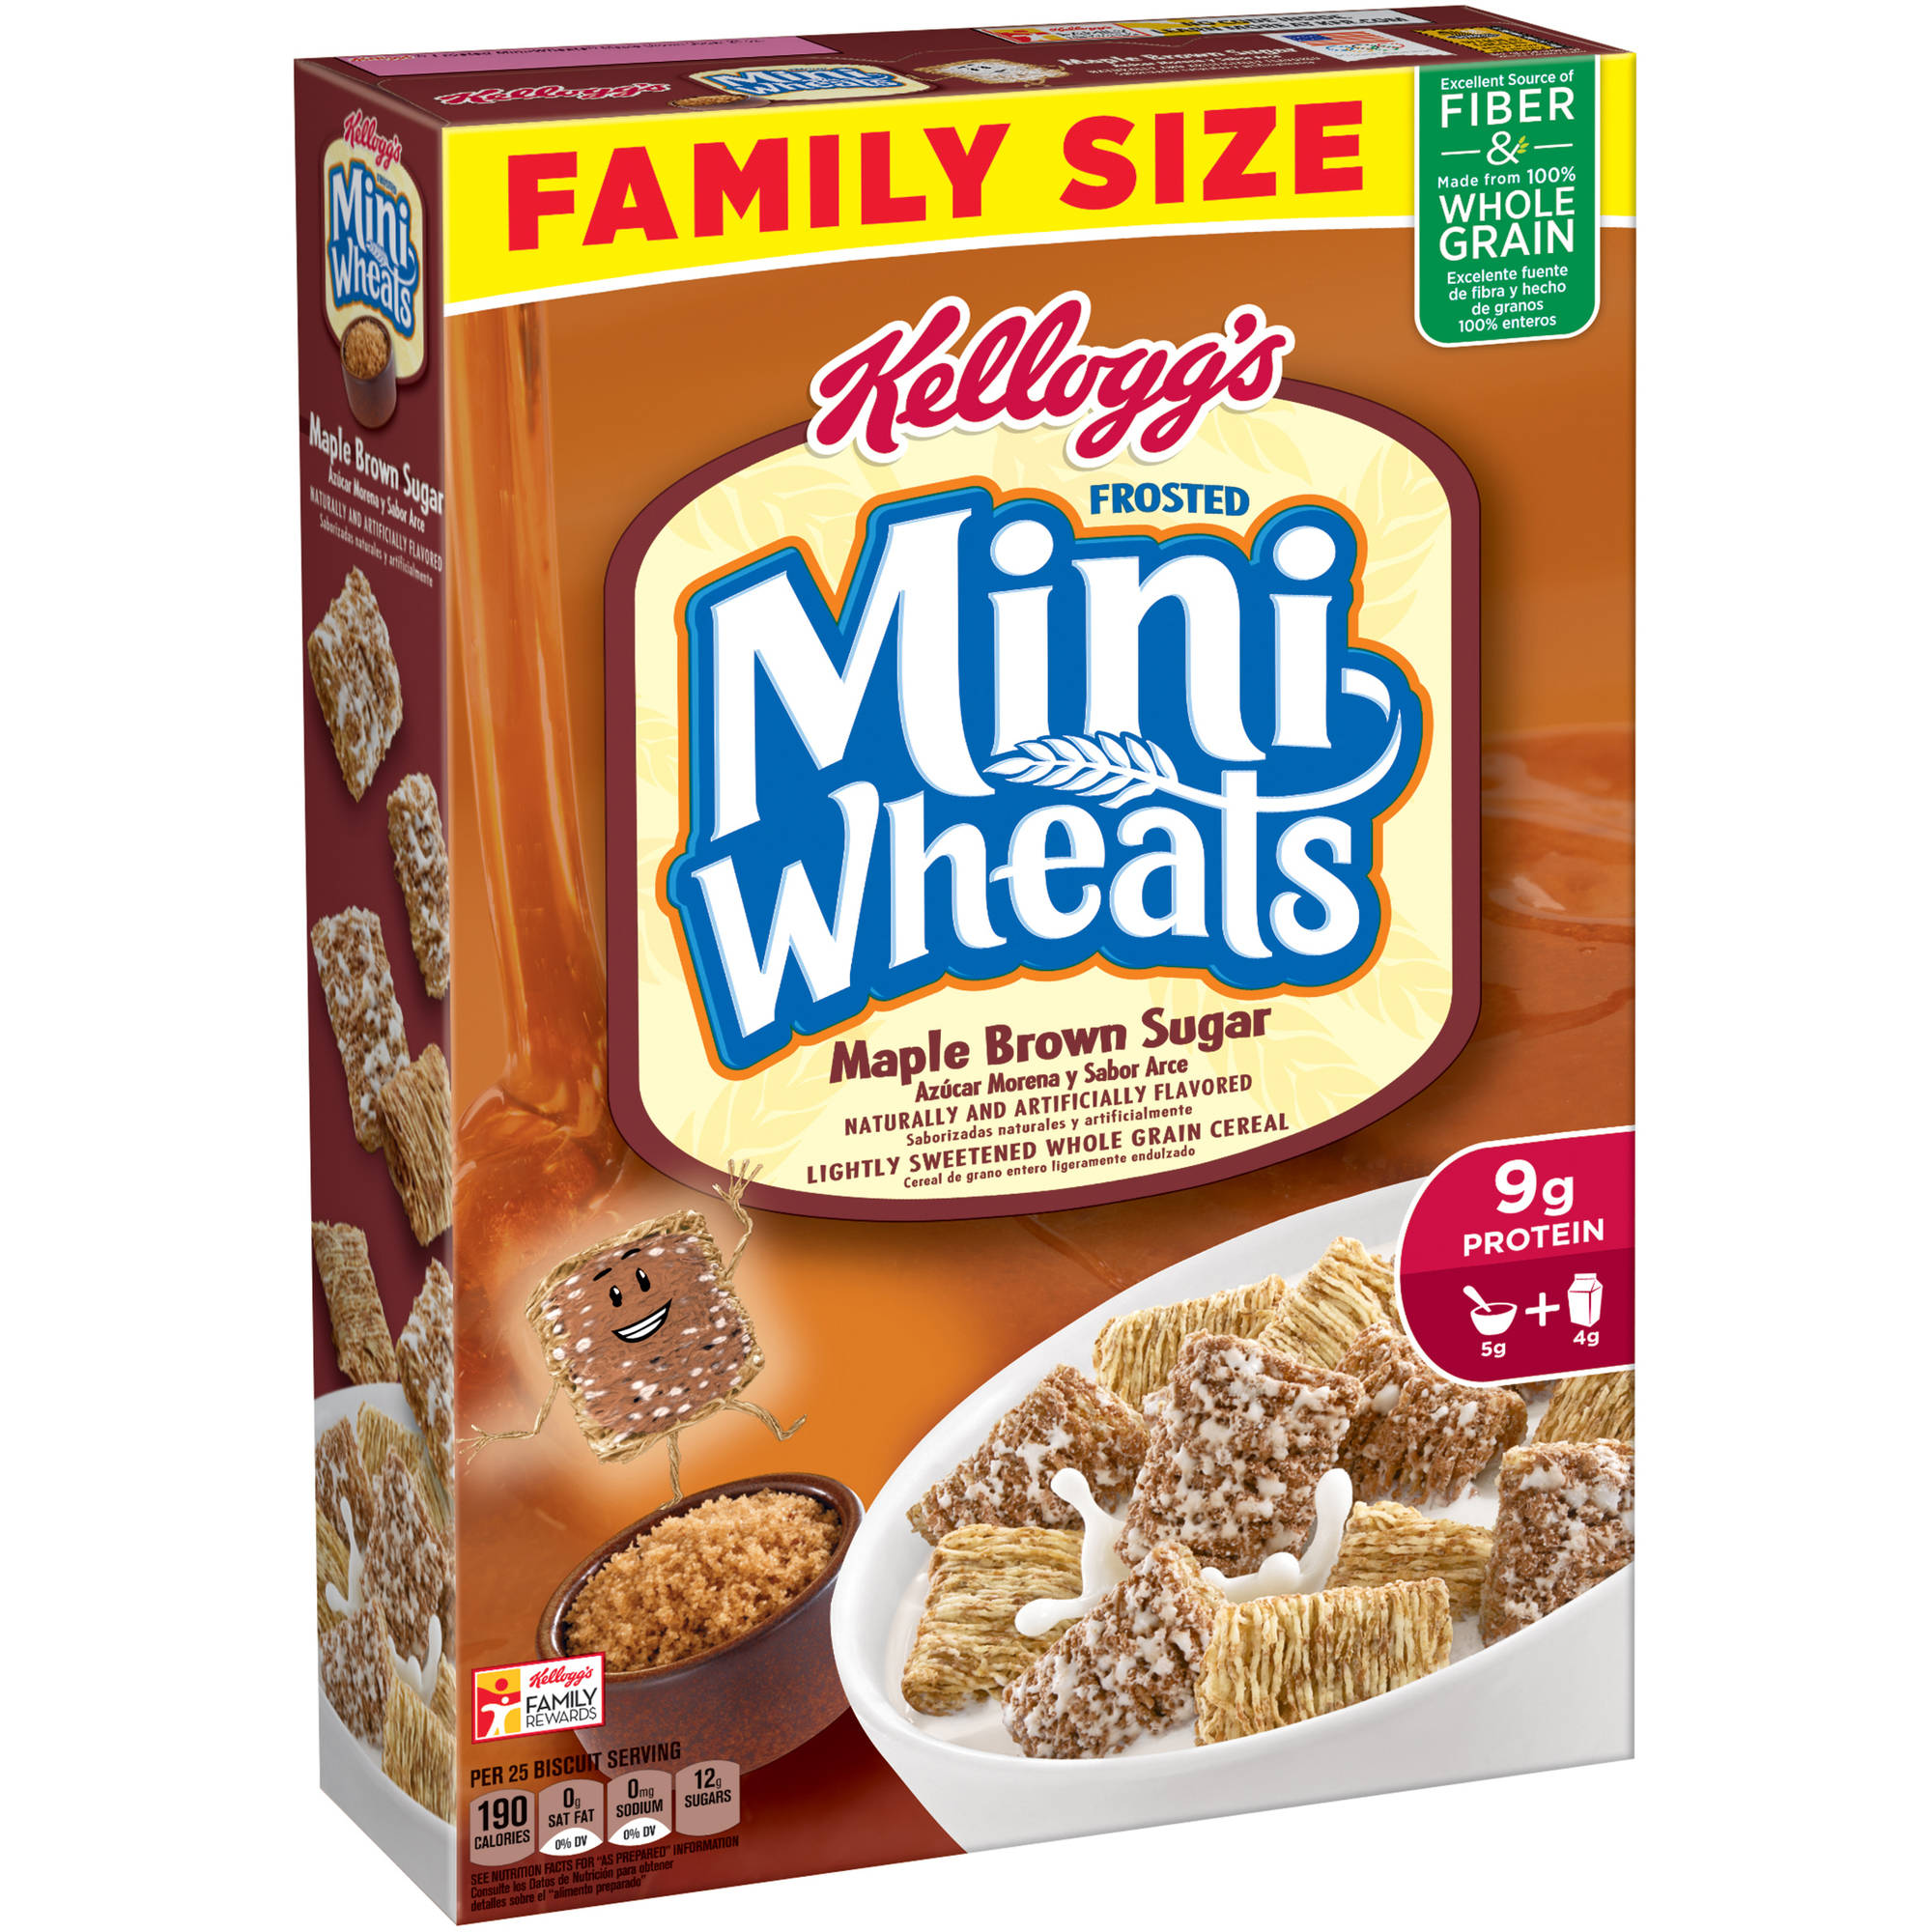 Kellogg's Frosted Mini-Wheats Maple Brown Sugar Cereal, 21 oz